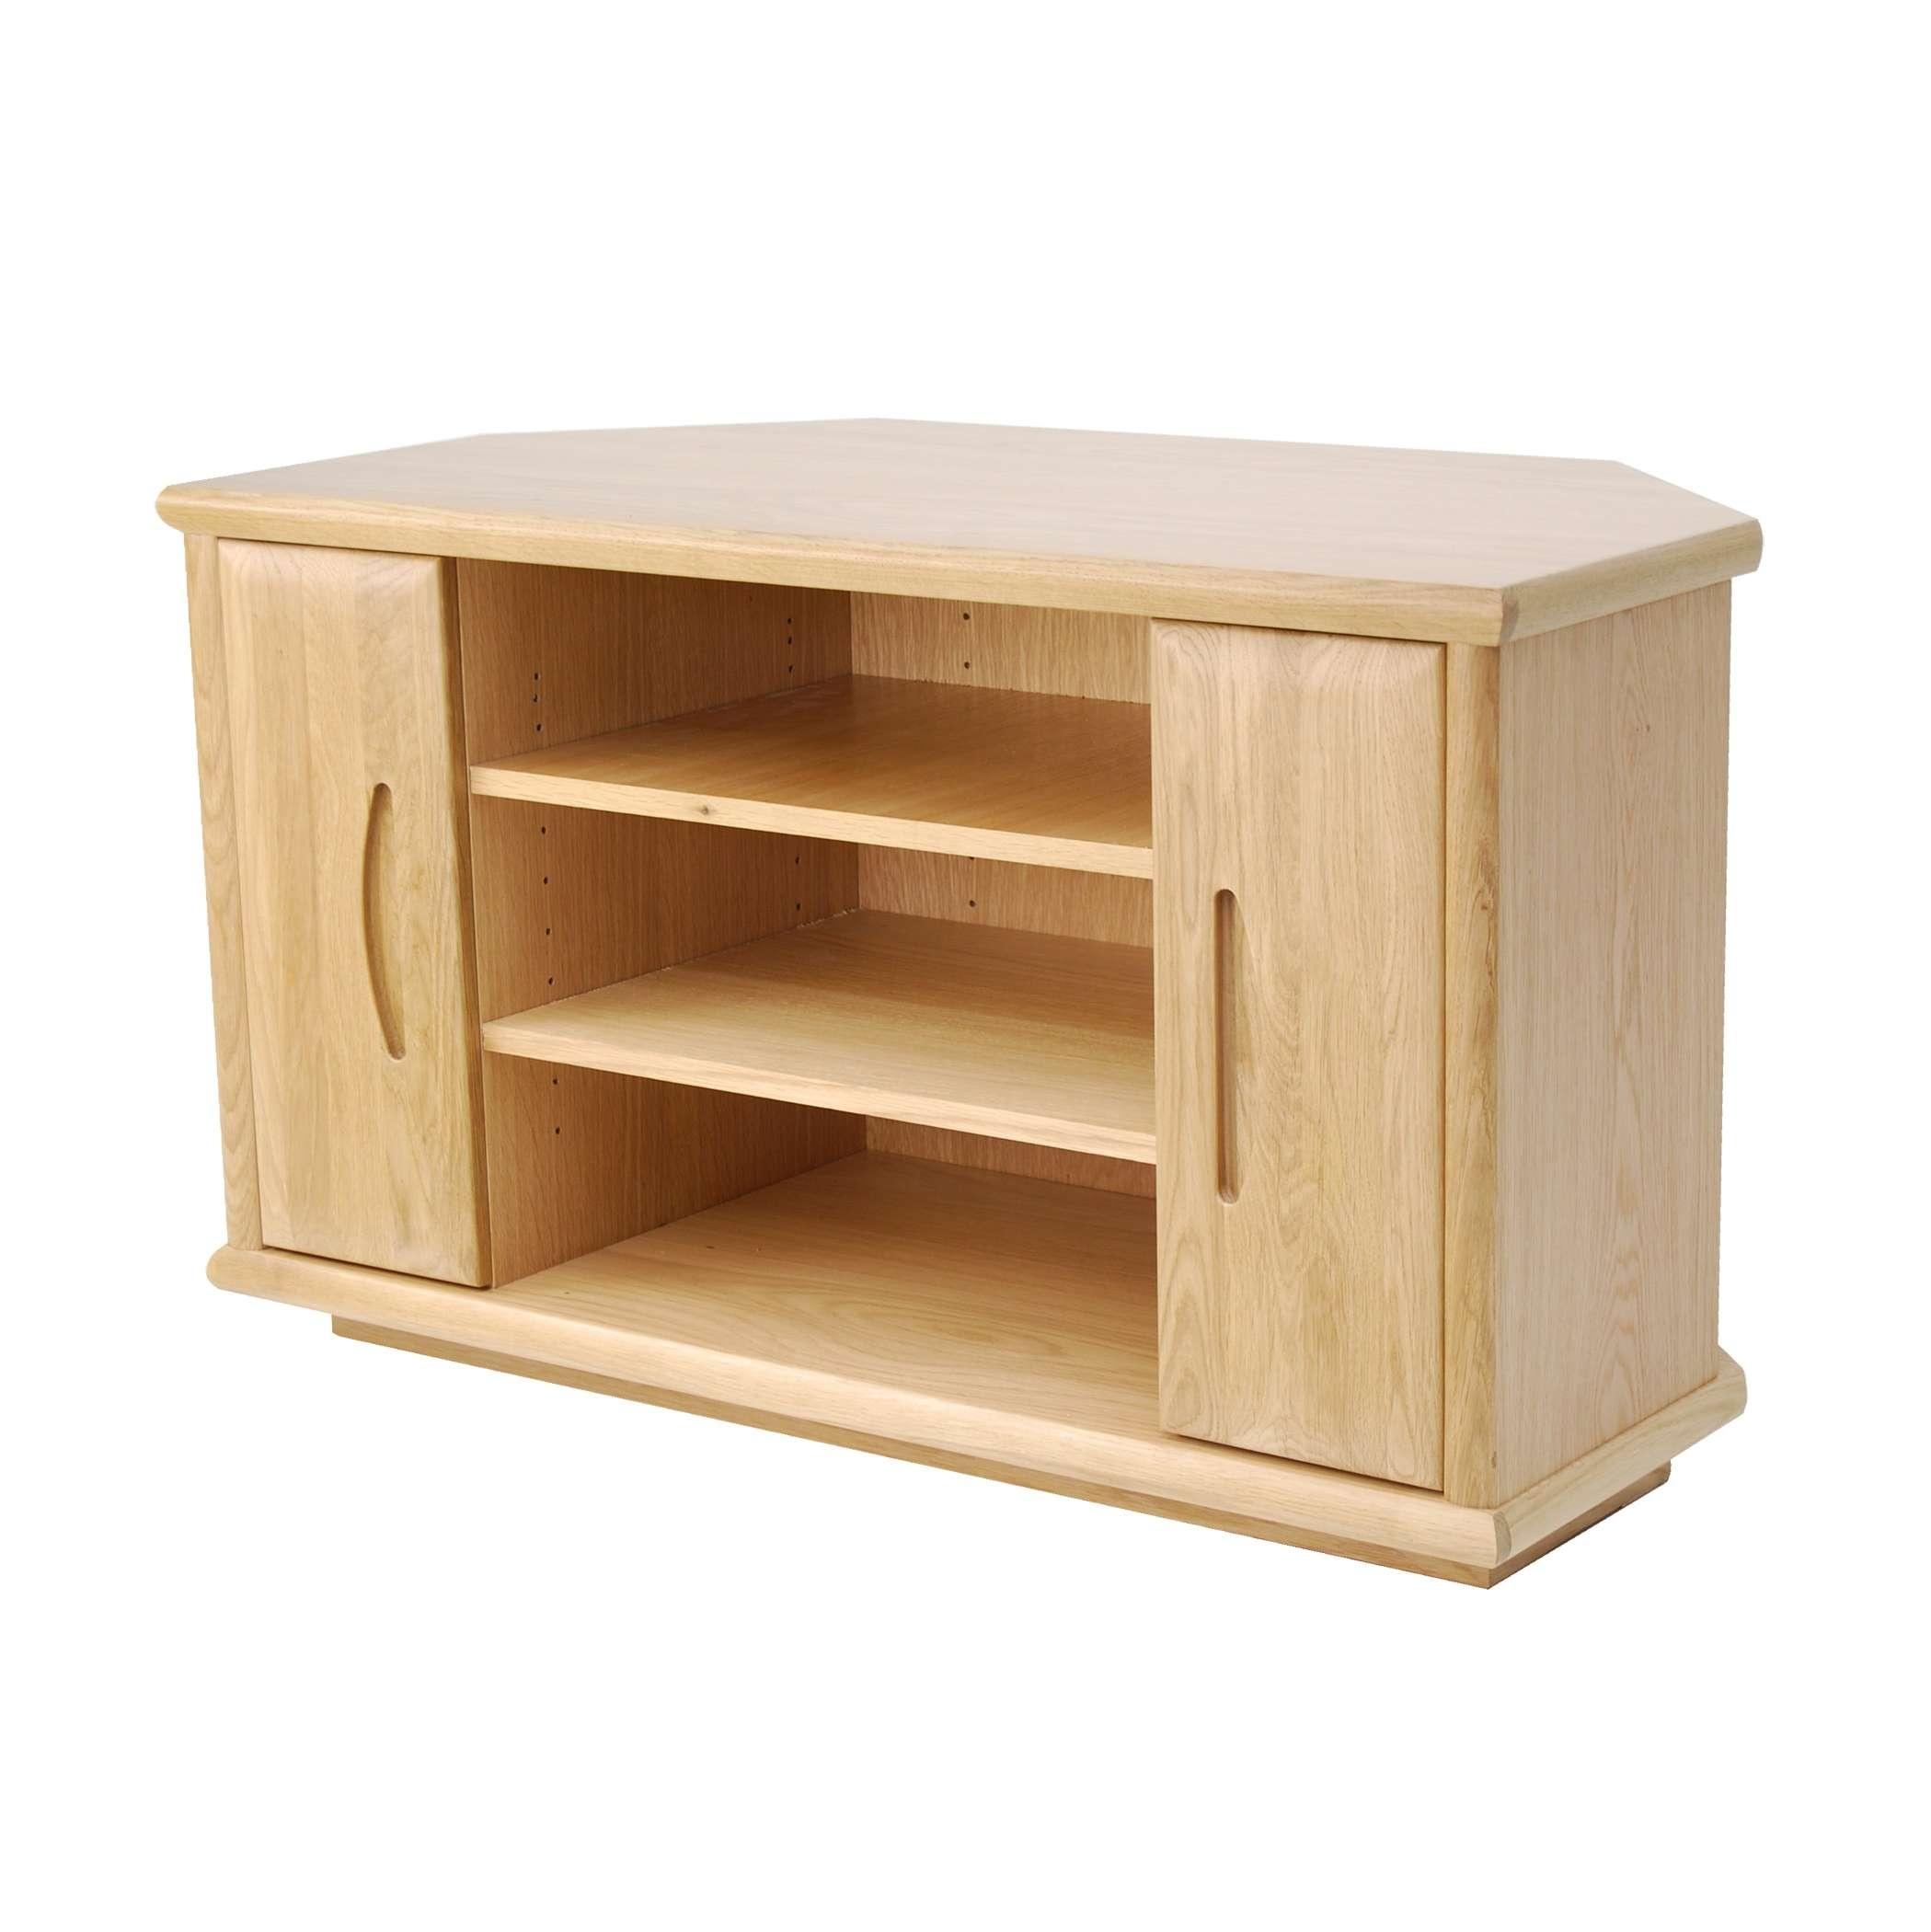 Oak Corner Tv Stand | Gola Furniture Uk With Dark Wood Corner Tv Cabinets (View 13 of 20)